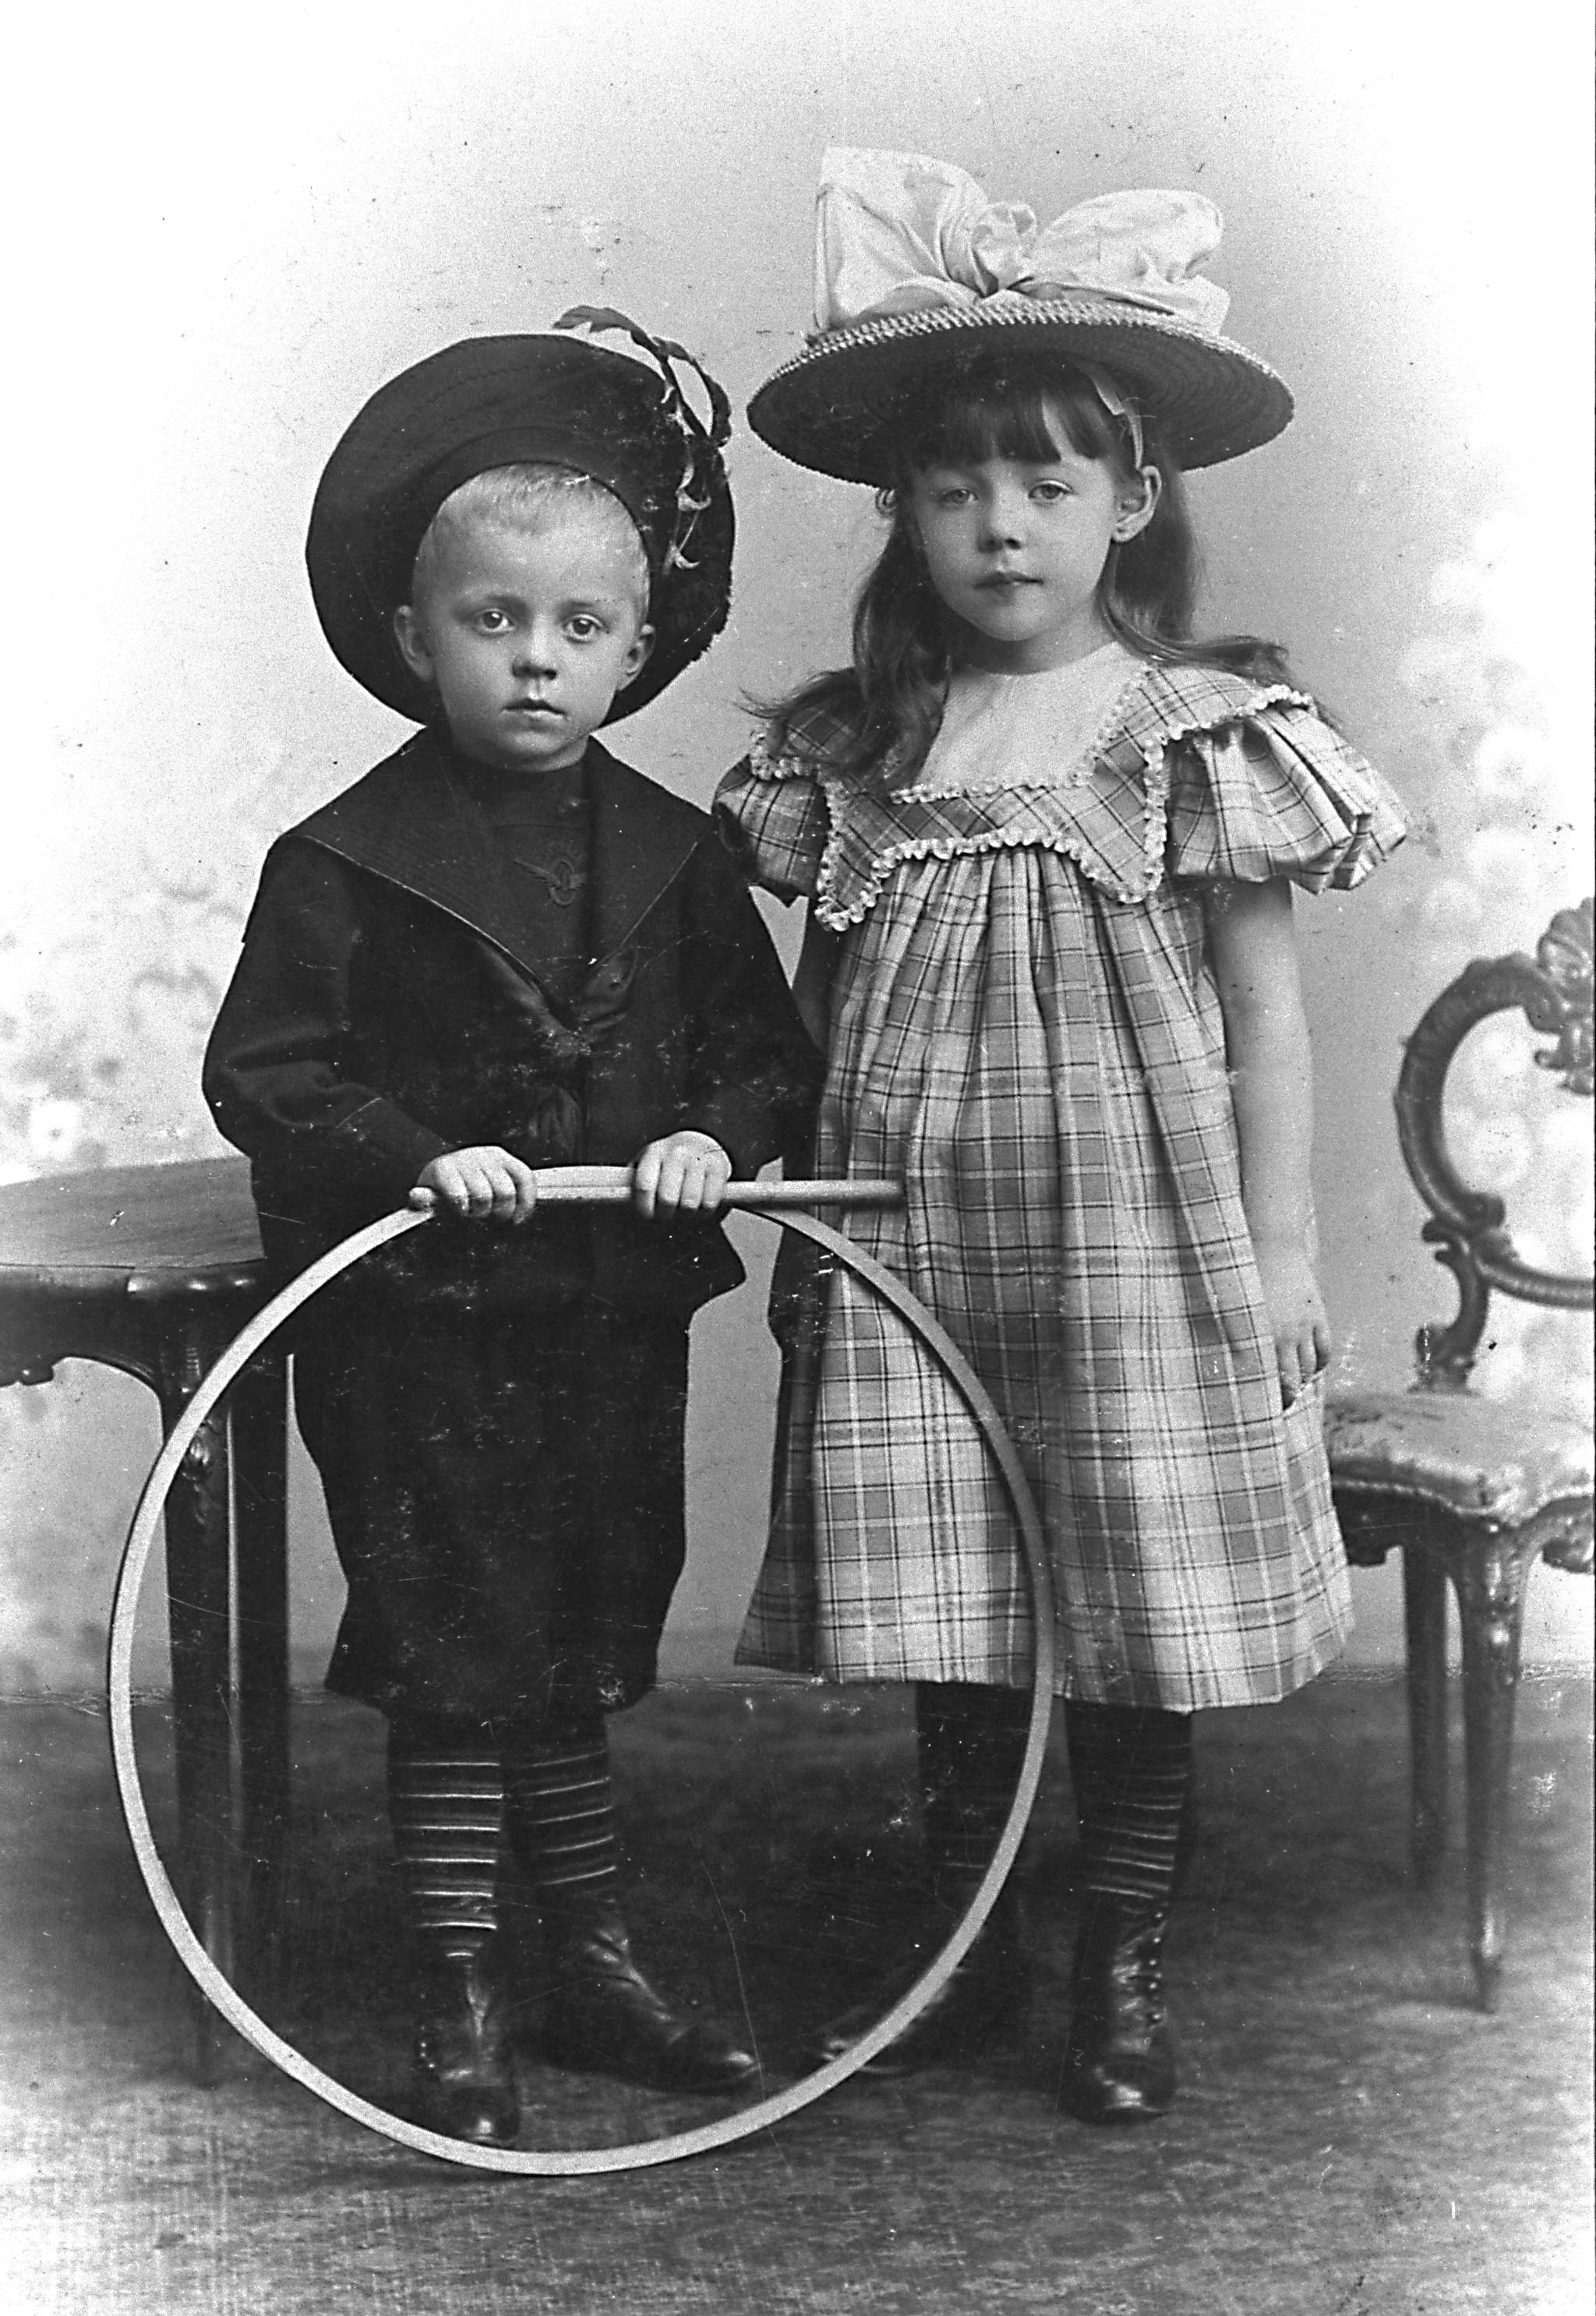 File:Siblings 1900 hg.jpg